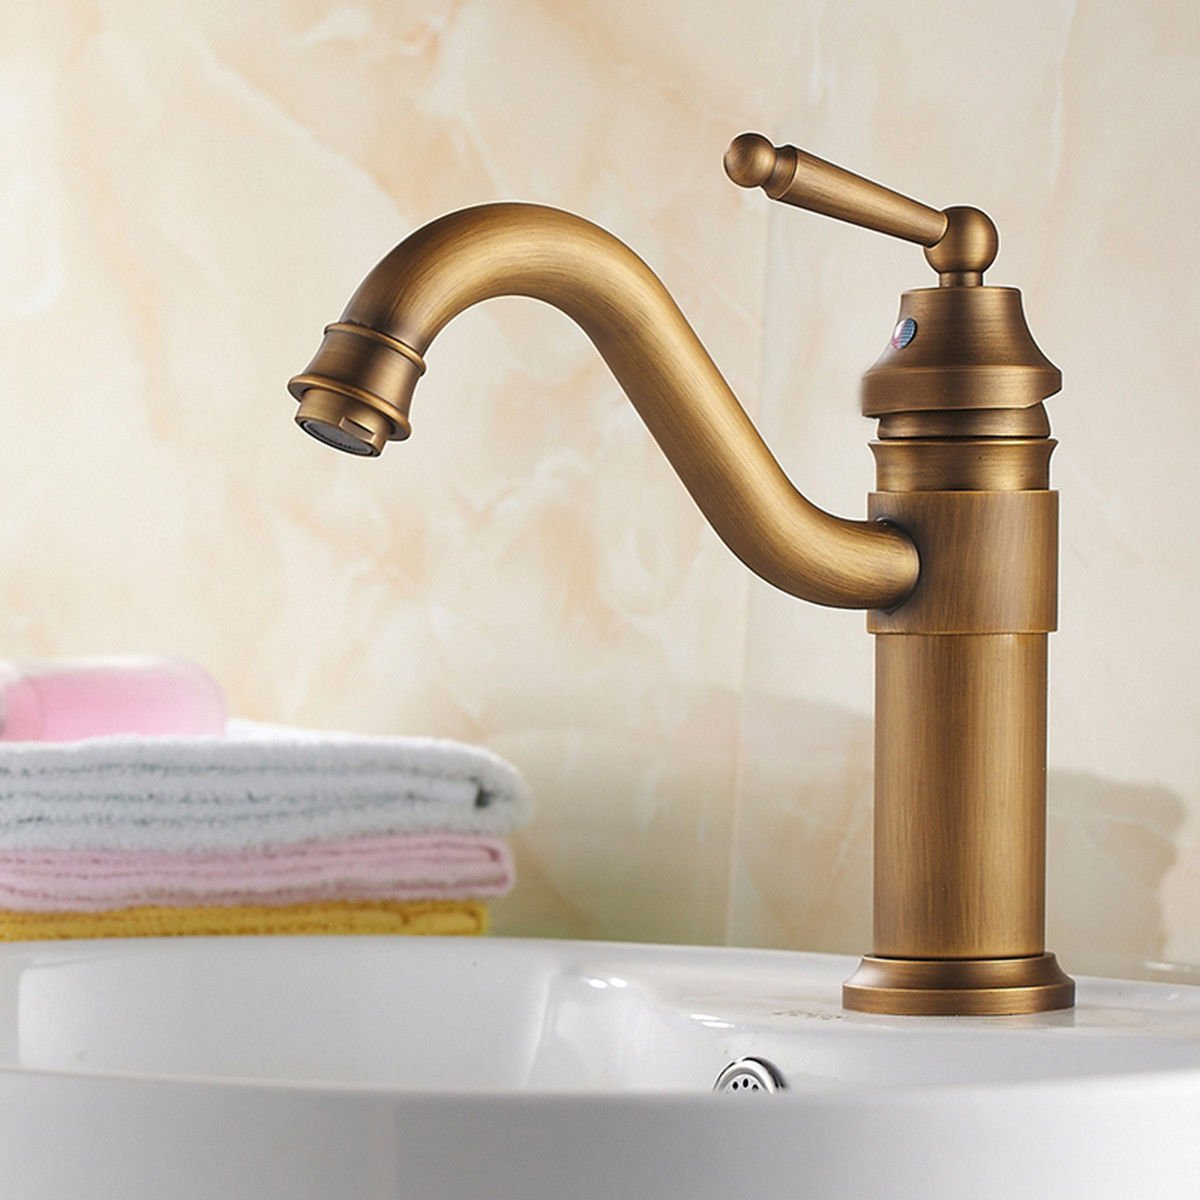 SADASD Contemporary Bathroom Full Copper Basin Faucet Black High-Basin Sink Mixer Tap Ceramic Valve Single Hole Single Handle Cold Water With G1 2 Hose